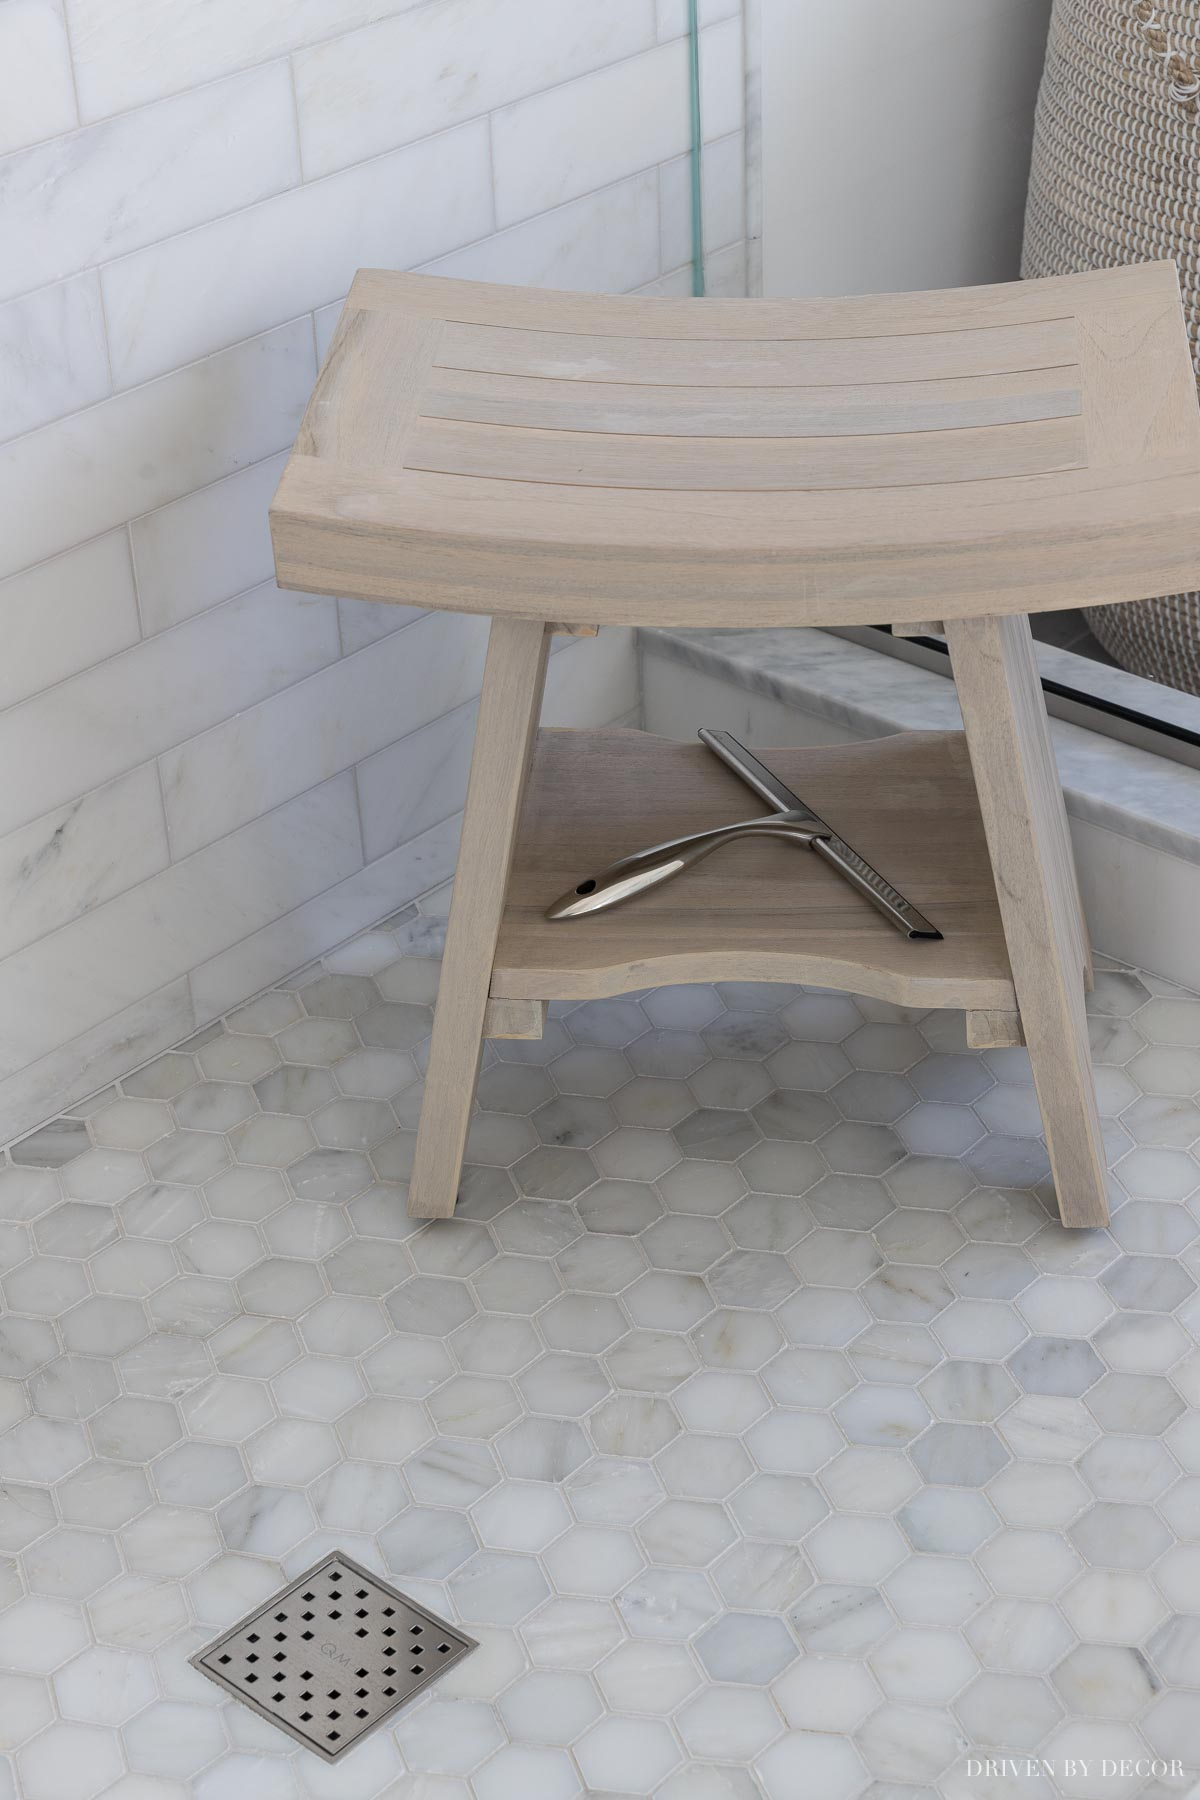 This squeegee is a must-have for keeping marble tile clean in bathrooms!